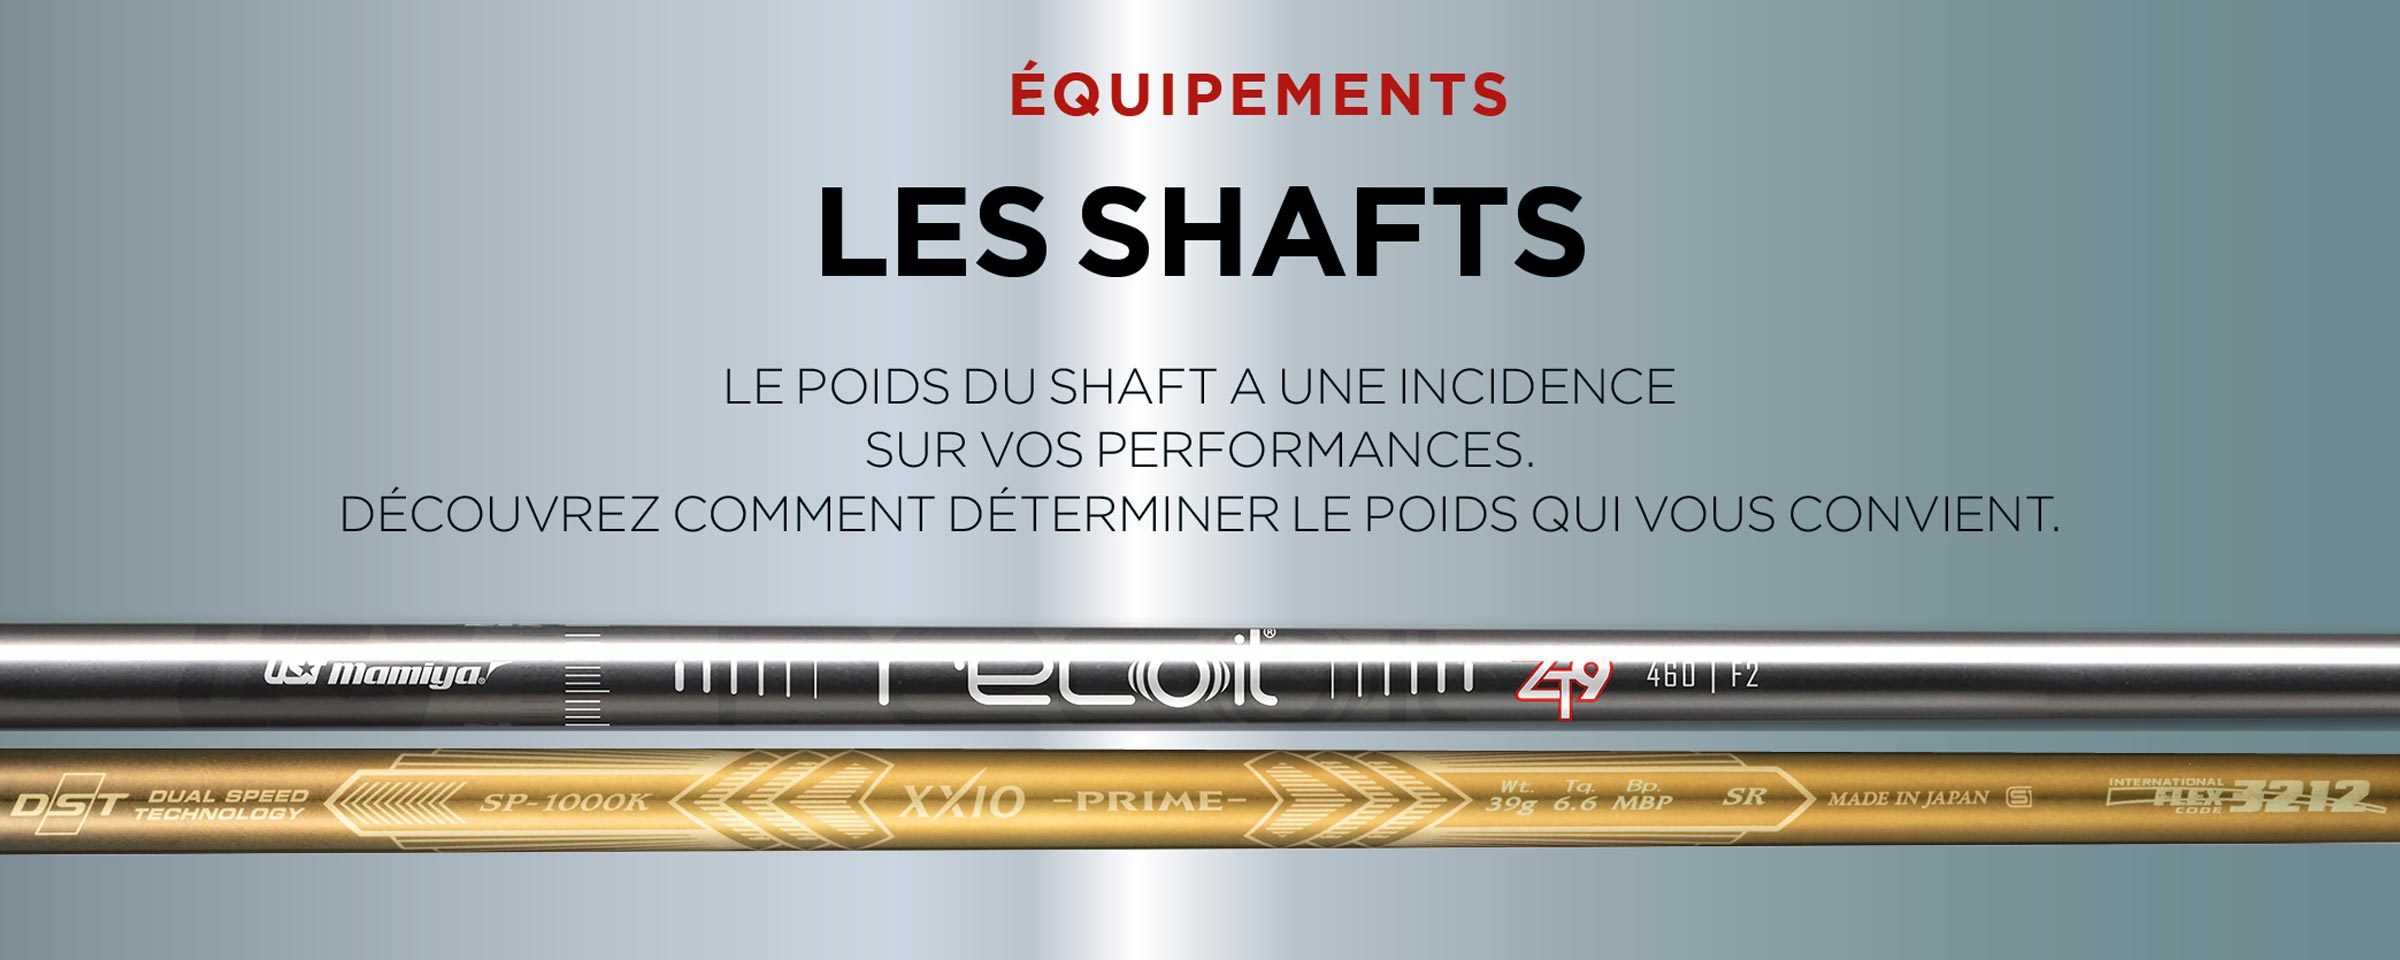 Les shafts